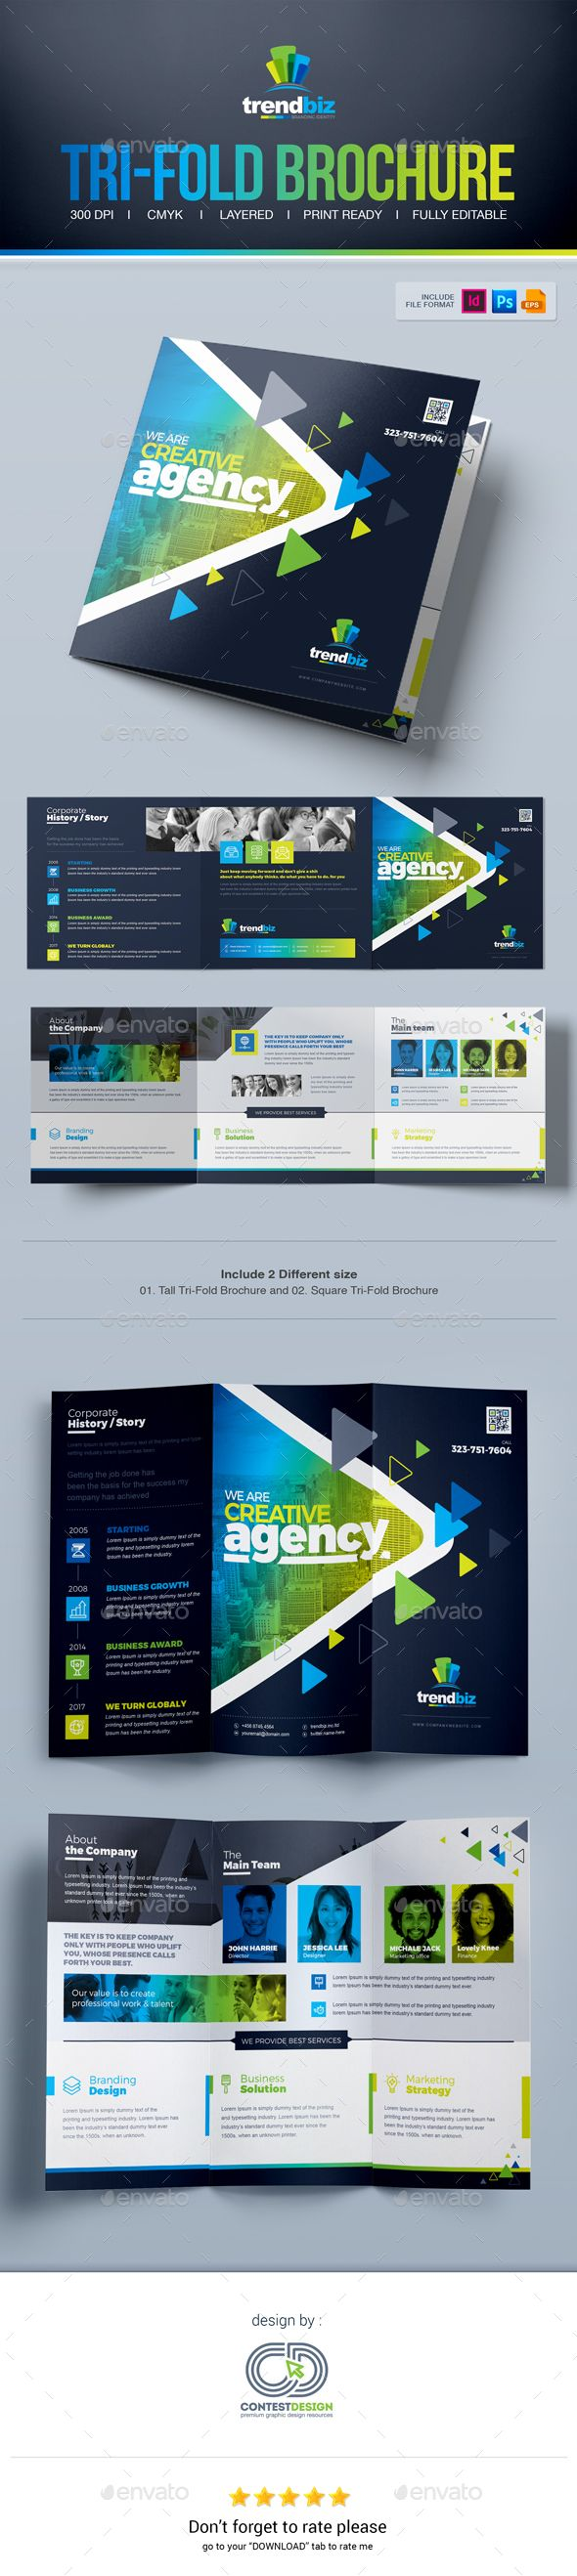 17 Best ideas about Brochure Template on Pinterest | Brochure ...